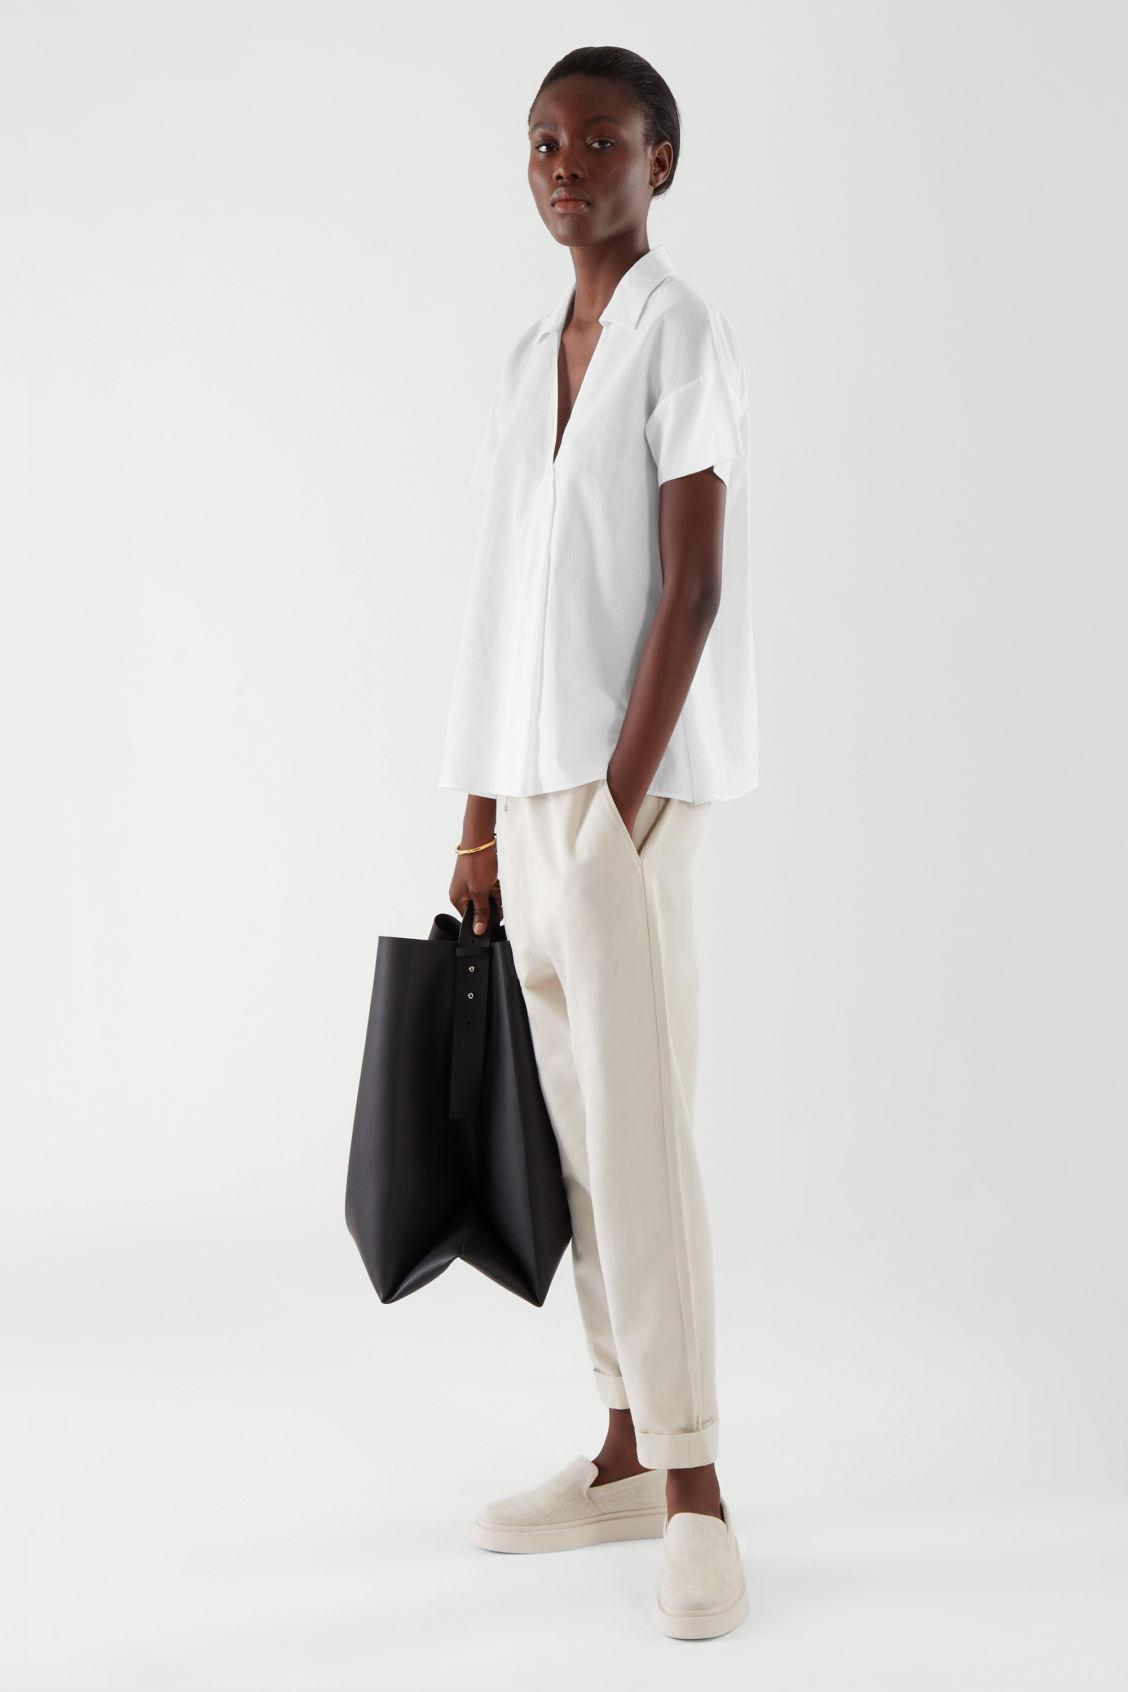 SHORT-SLEEVED TOP WITH PLEAT